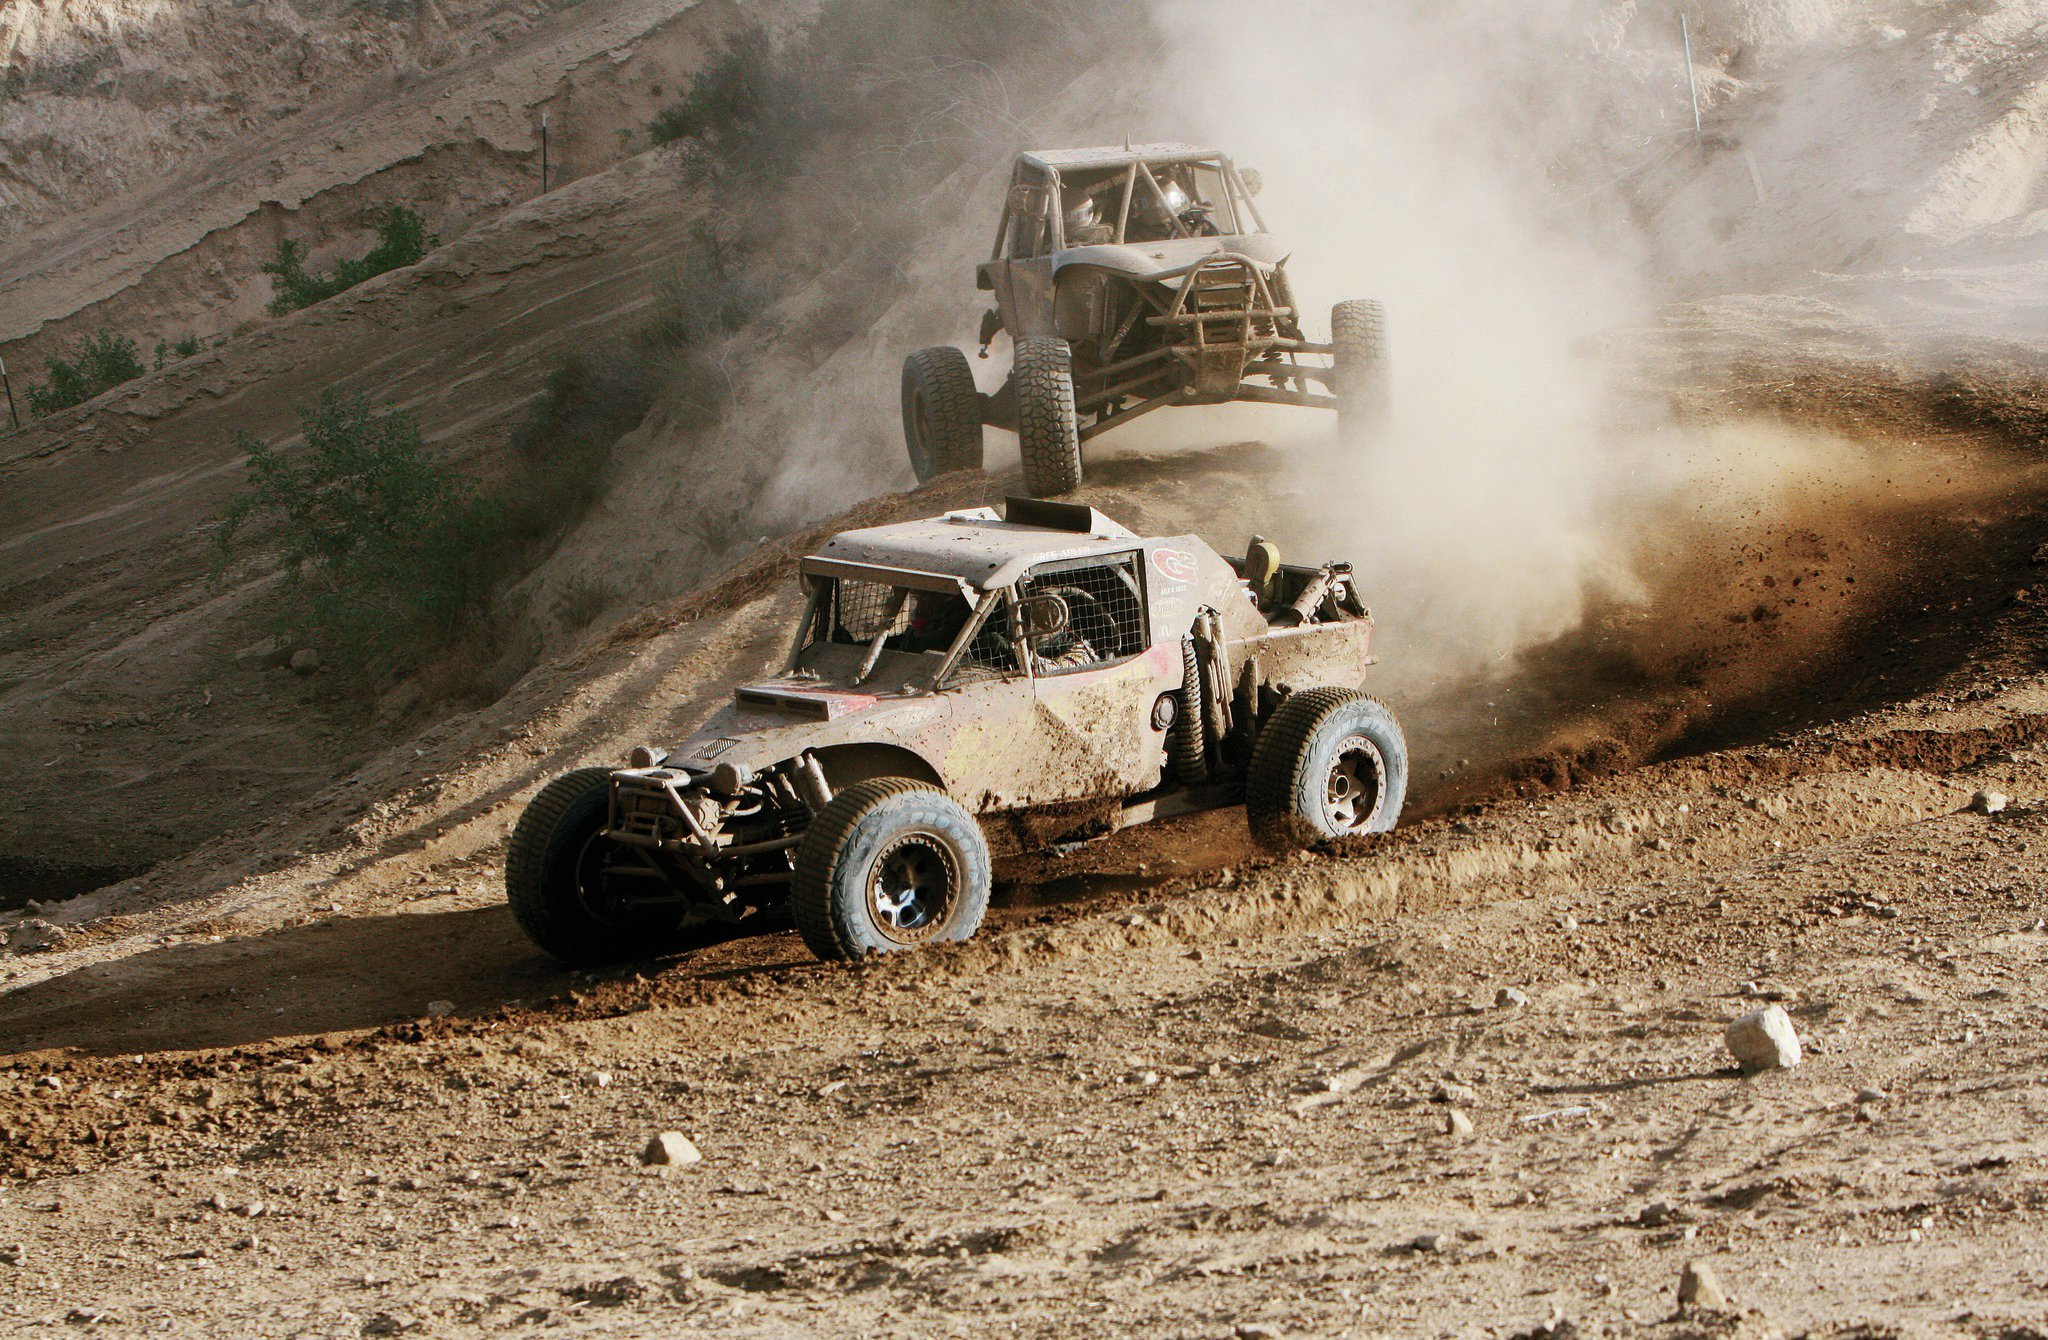 Clean air is a challenge at Glen Helen. The track gets dusty, and smog sometimes obscures the adjacent San Bernardino mountains. Here, title sponsor Greg Adler of 4Wheel Parts enjoyed a brief period of good visibility before mechanical problems eliminated him.